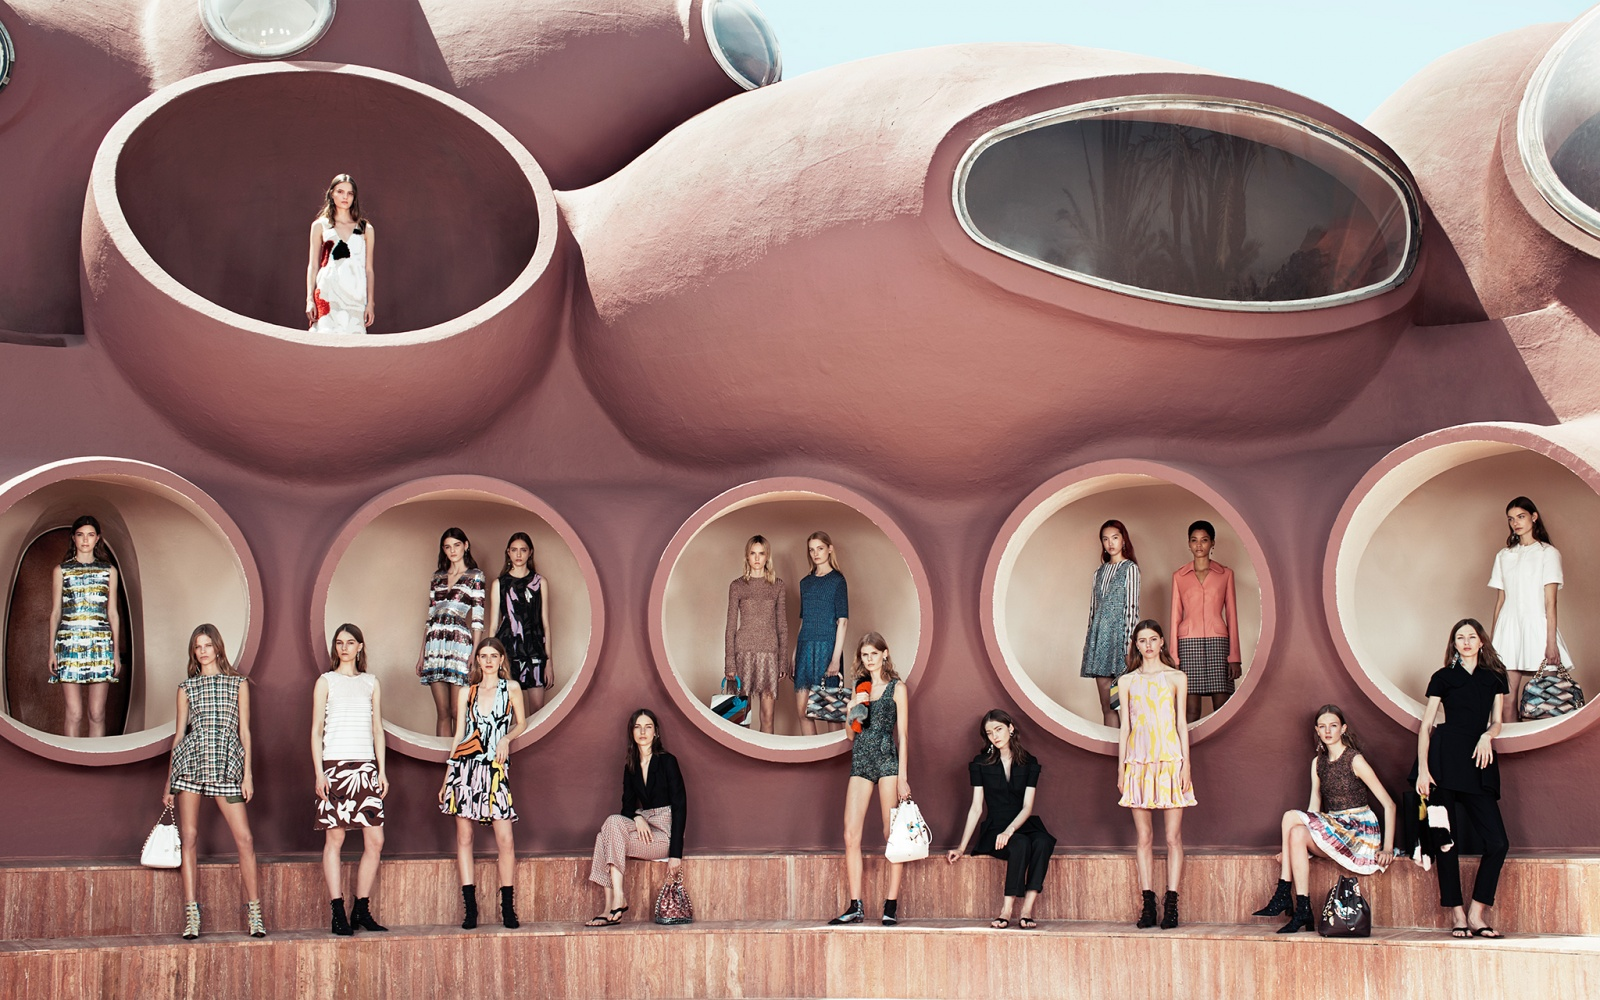 Palais Bulles in the French Riviera